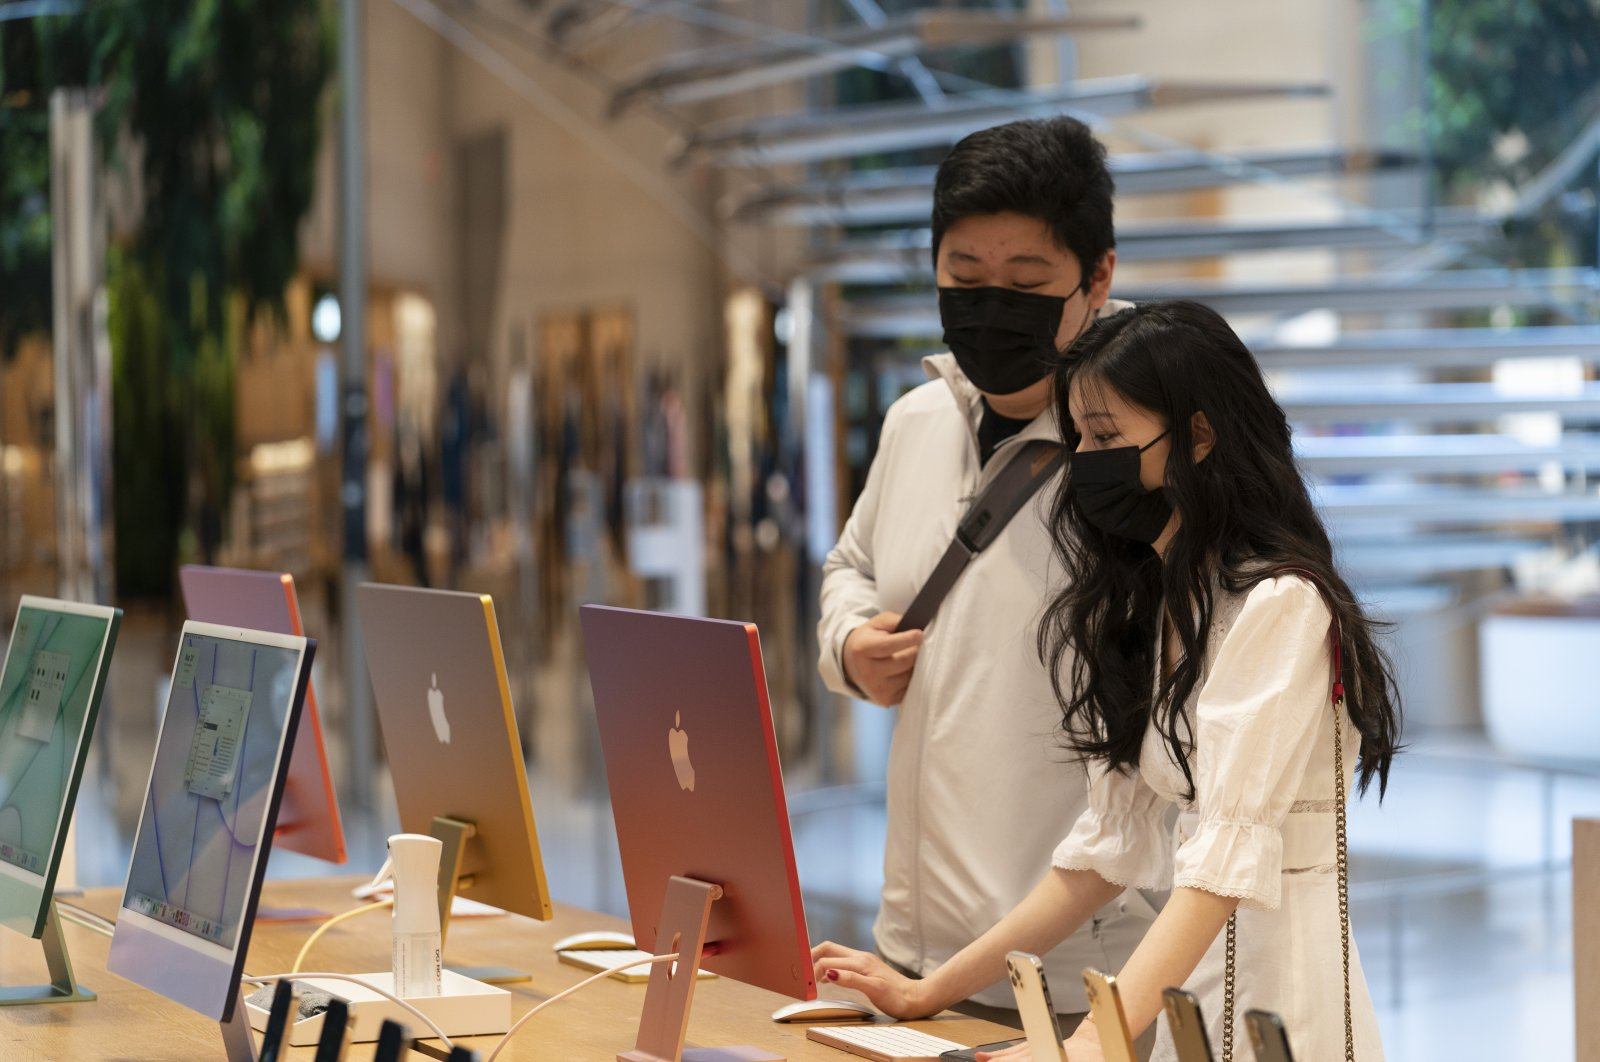 """Customers view the new 24"""" iMac desktop computers in an Apple store, in New York, U.S., May 21, 2021. (AP Photo)"""